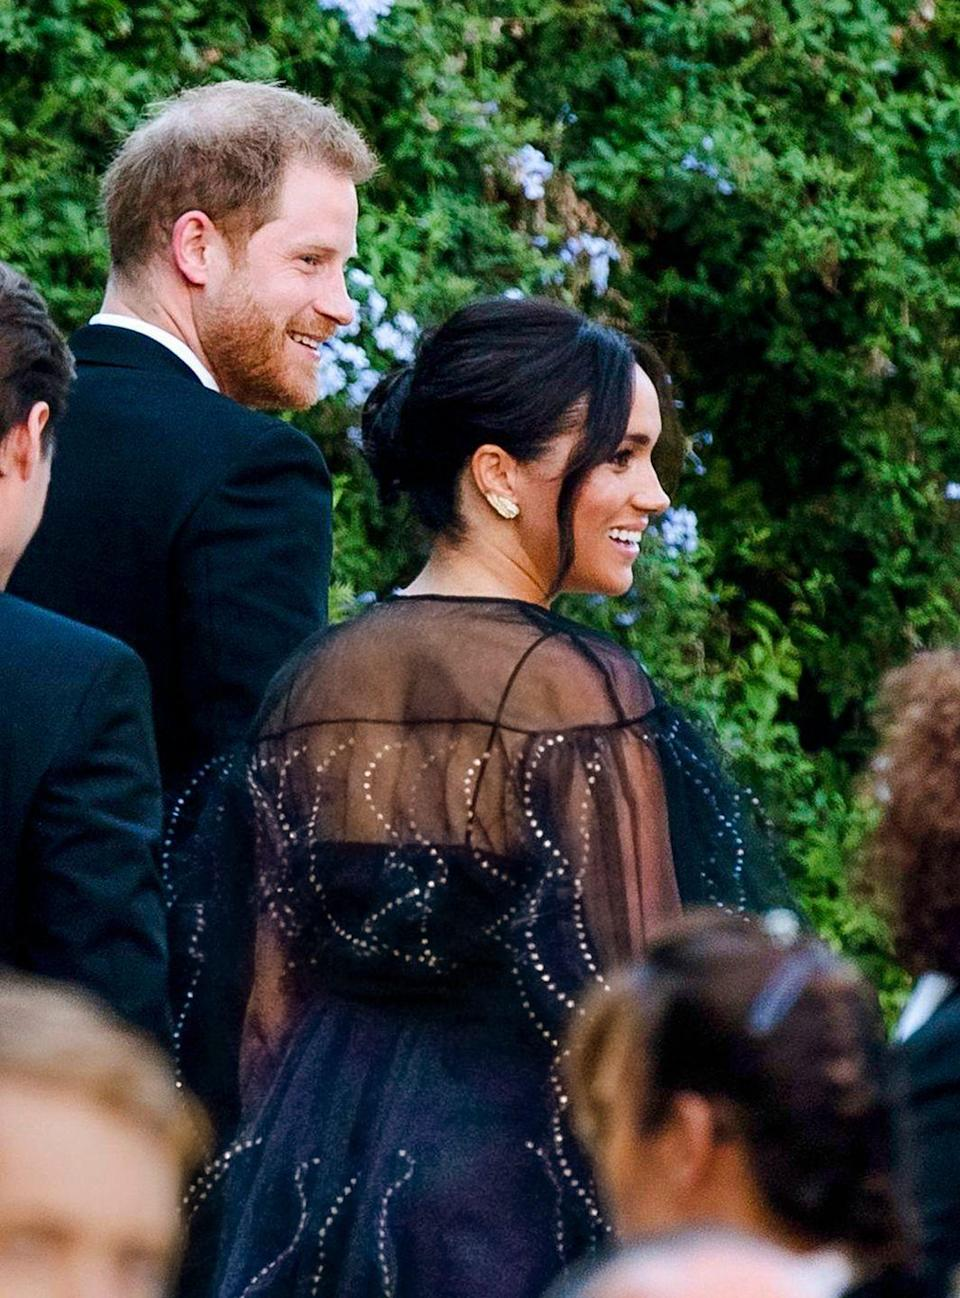 <p>The Duchess of Sussex attended the nuptials of Misha Nonoo (who was rumored to have set her up with her husband Prince Harry) and Mikey Hess in Rome wearing a striking black chiffon dress with metallic embellishment on the whimsical pleats. </p>